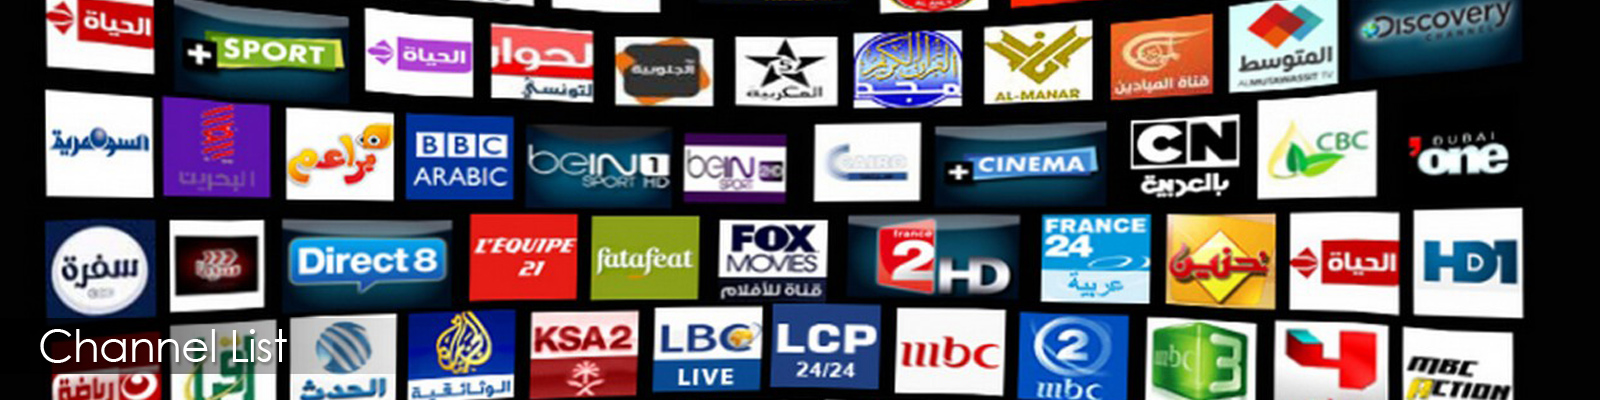 Dish TV Channels Karachi